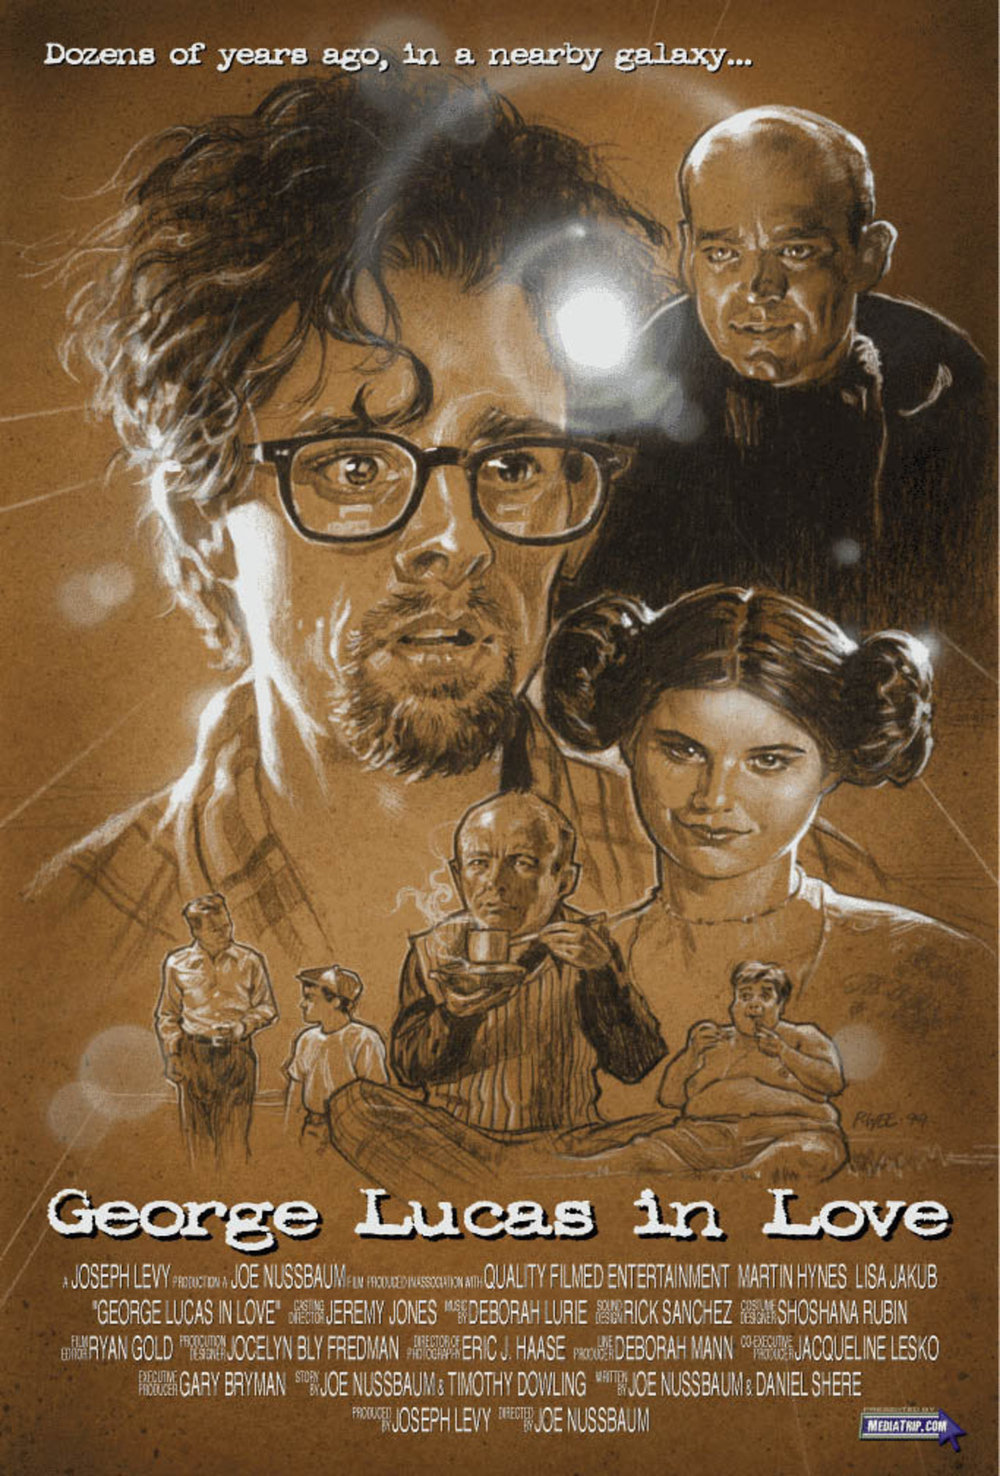 George Lucas in Love.jpg